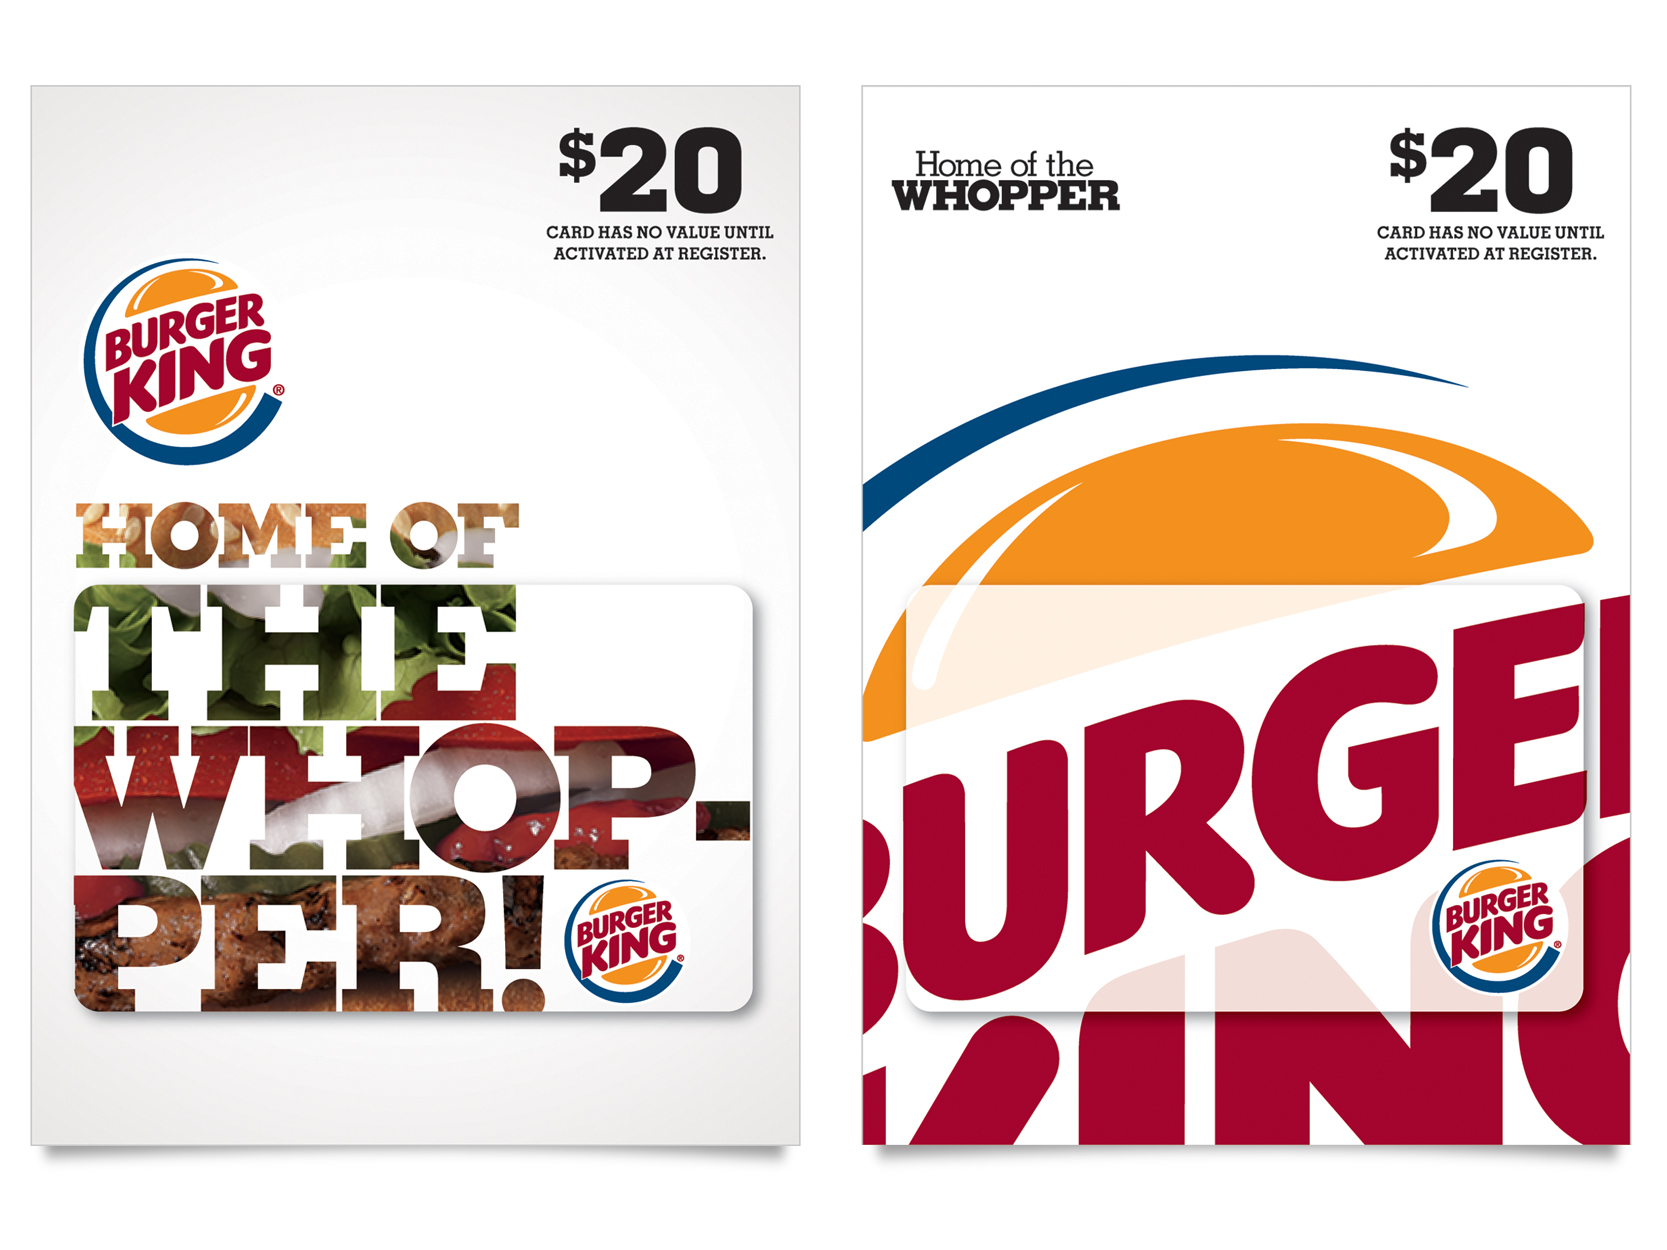 BK_GiftCards_0000_Image_1